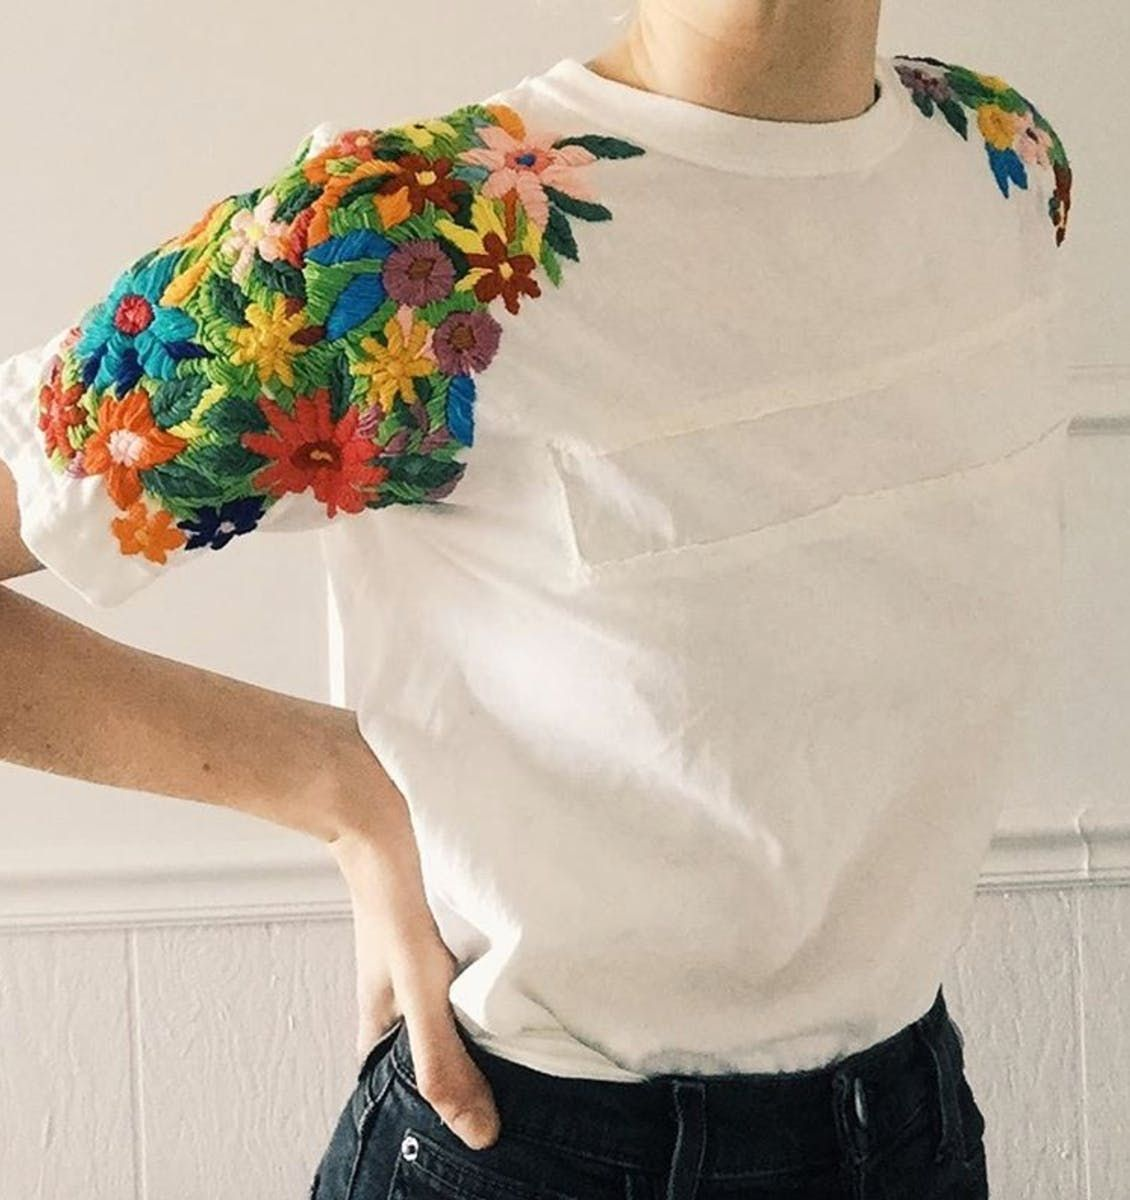 Cool DIY Embroidery Project – Flowery Shoulders pics